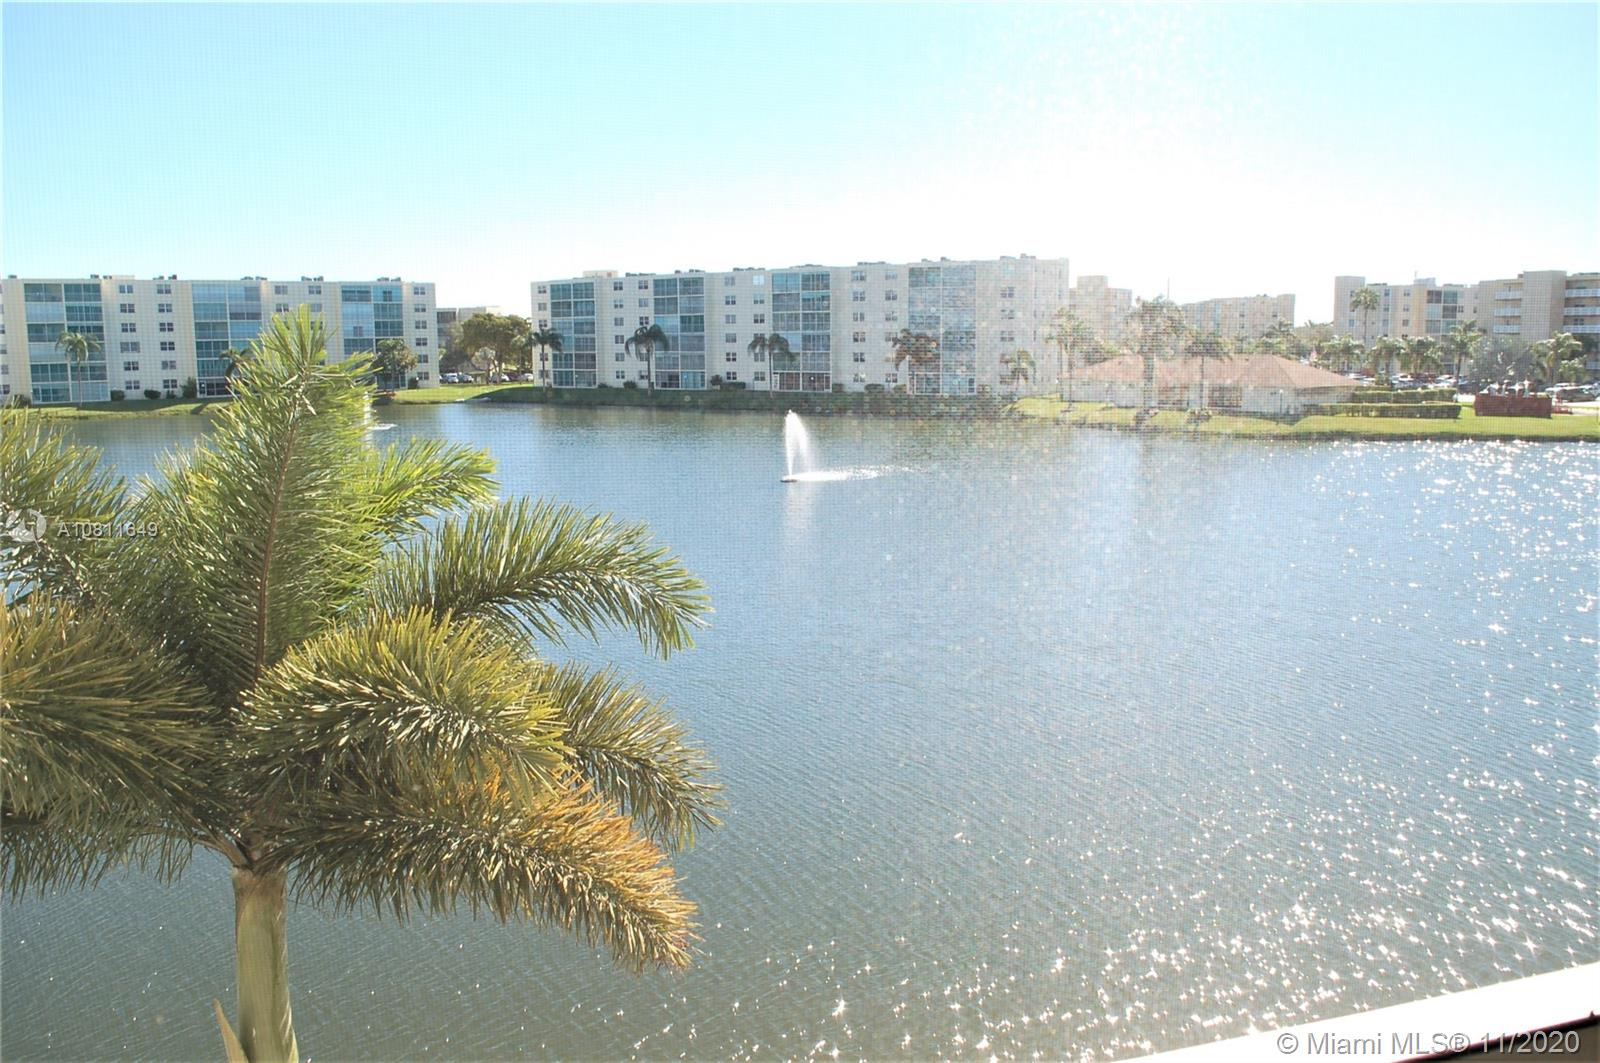 TURNKEY WITH A BEAUTIFULL WATER VIEW ! 2 BEDROOMS 2 BATHROOMS ,FULLY FURNISHED WITH TASTEFULLY DESIGN.PLENTY OF LARGE CLOSETS.HOPA COMMUNITY WITH POOL.VERY GOOD LOCATION !!!CLOSE TO CASINO,SHOPPING RESTAURANT AND BEACH A MUST SEE!!